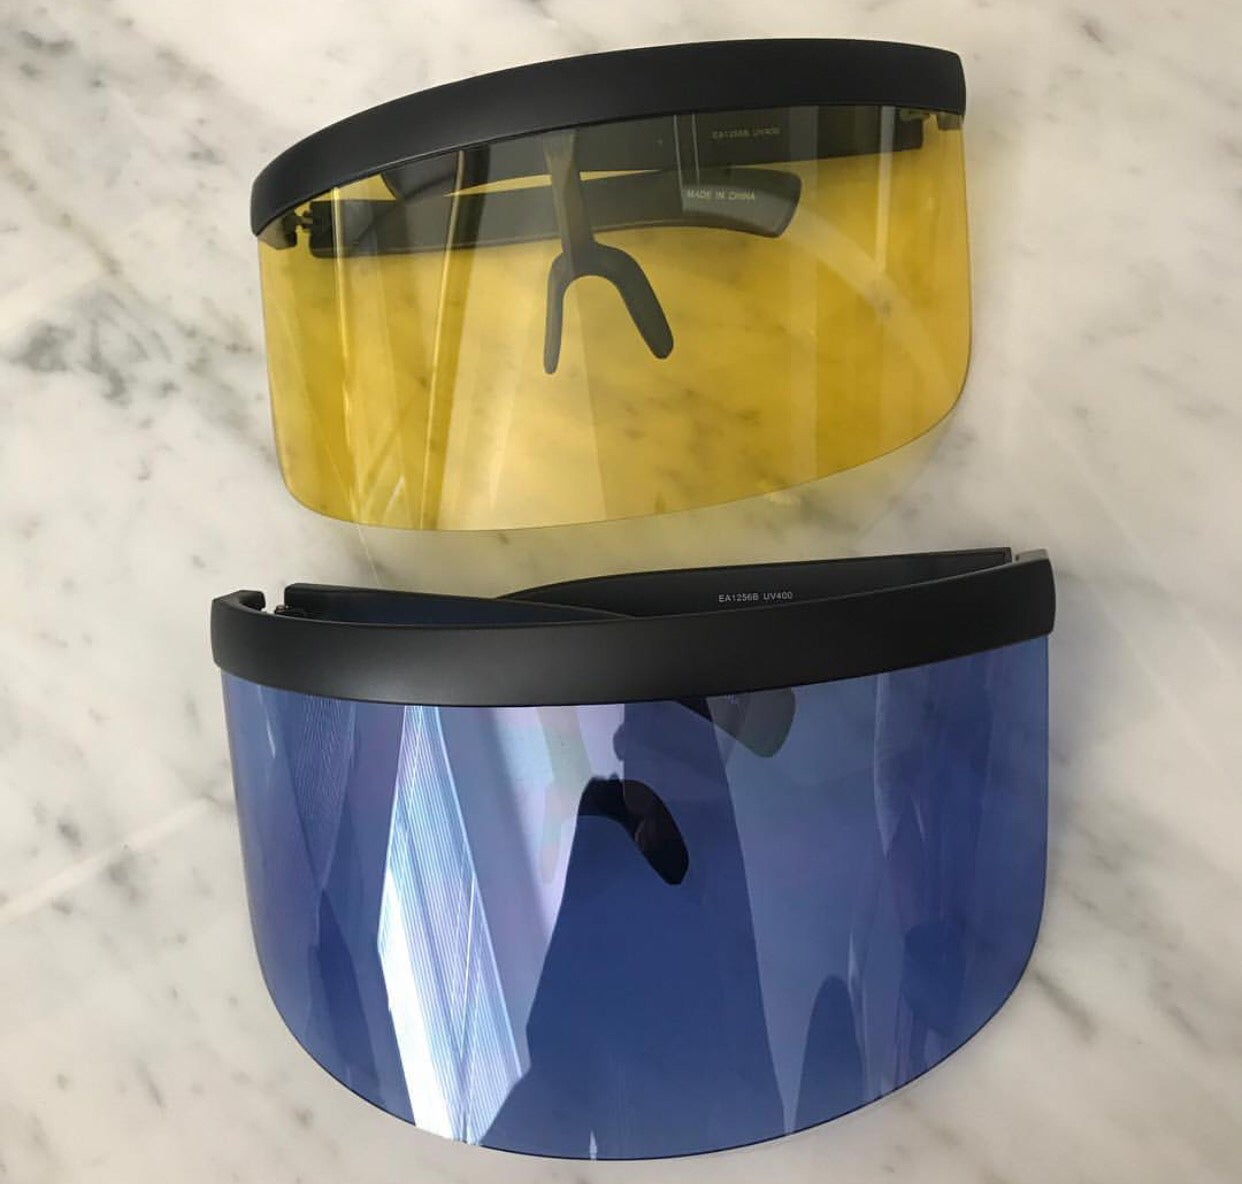 Image of VICKI VISOR SHADES